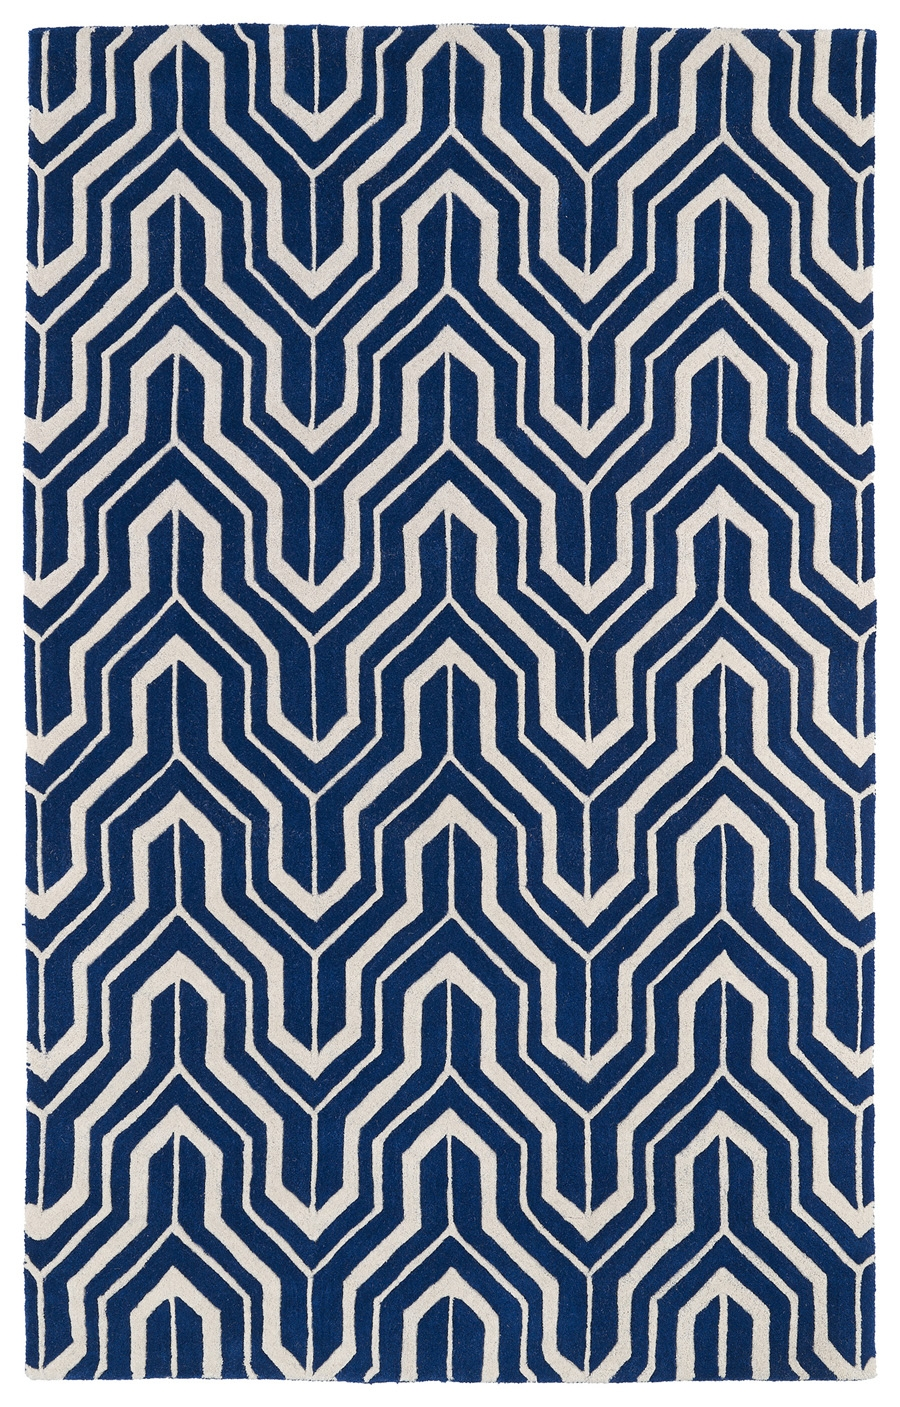 Kaleen Revolution REV01 22 Navy Rug